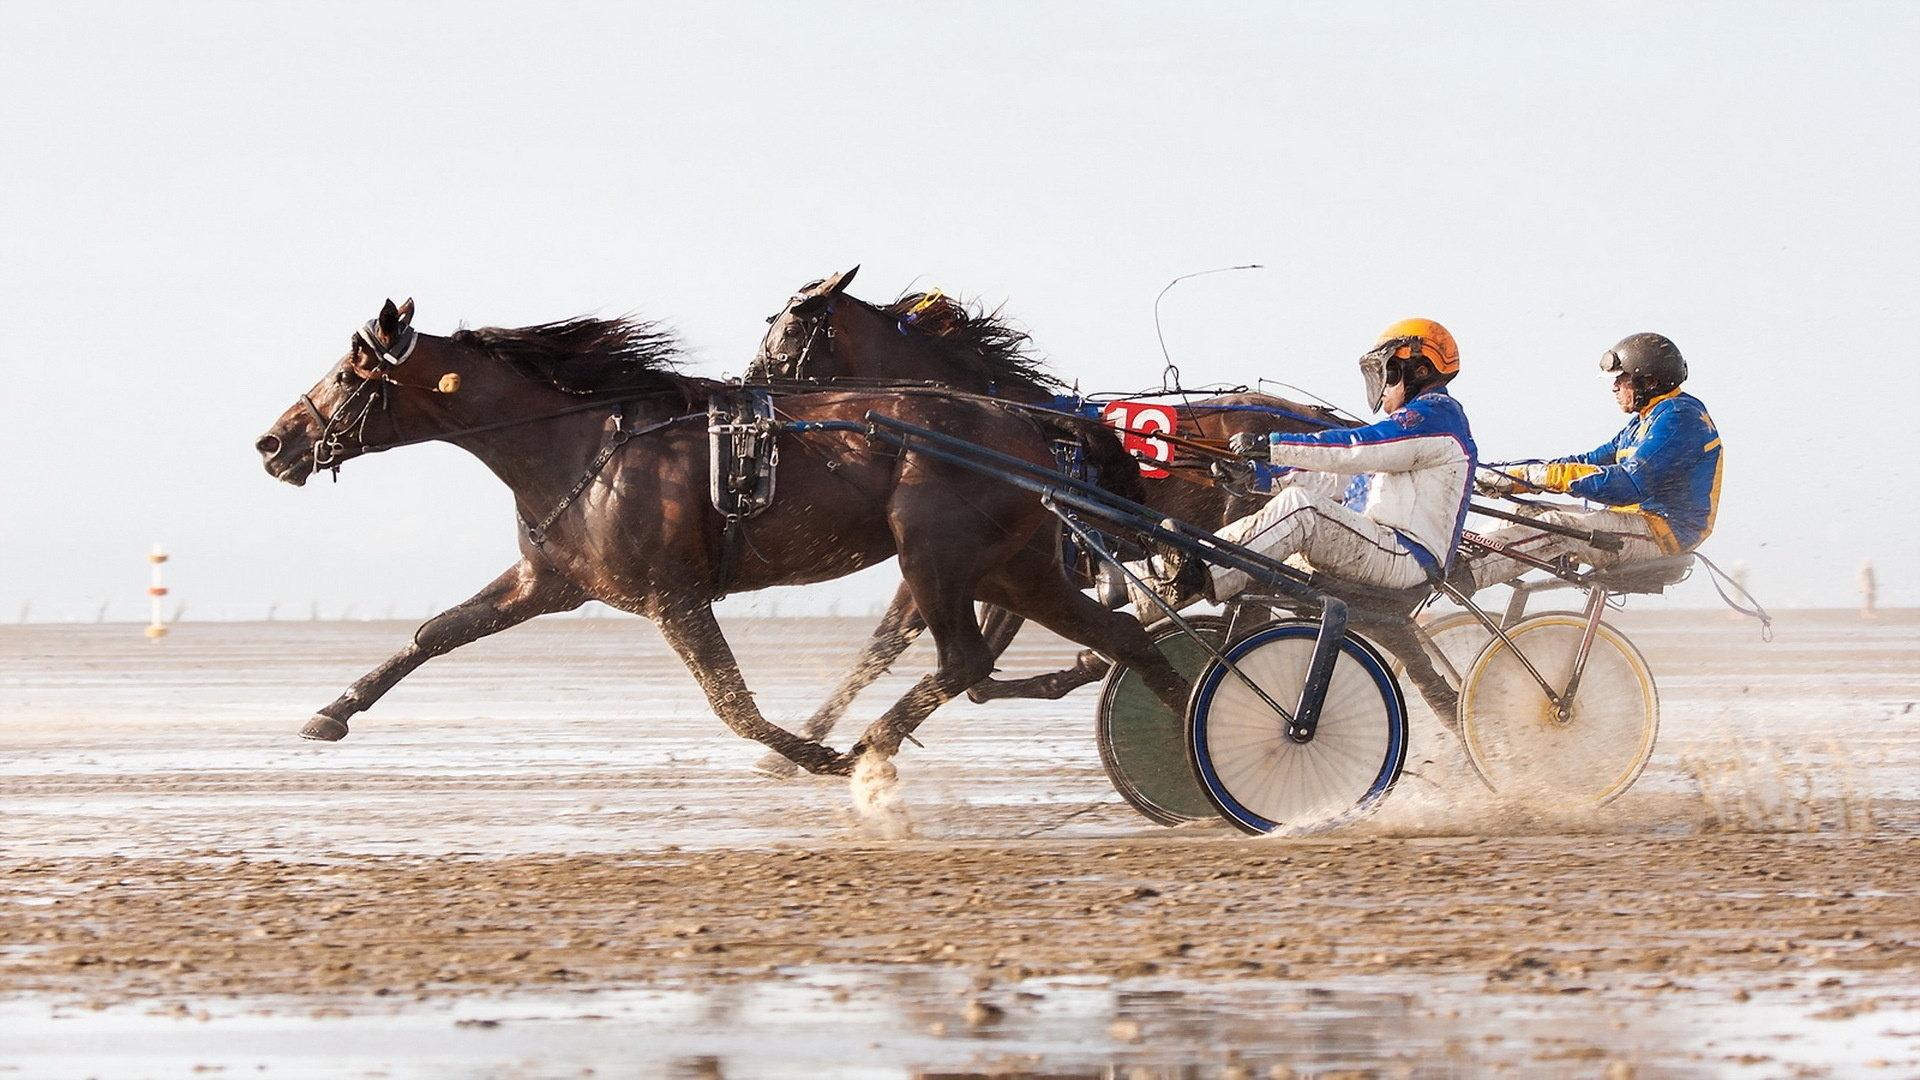 Horse Racing Awesome Hd Wallpapers - All Hd Wallpapers-6080